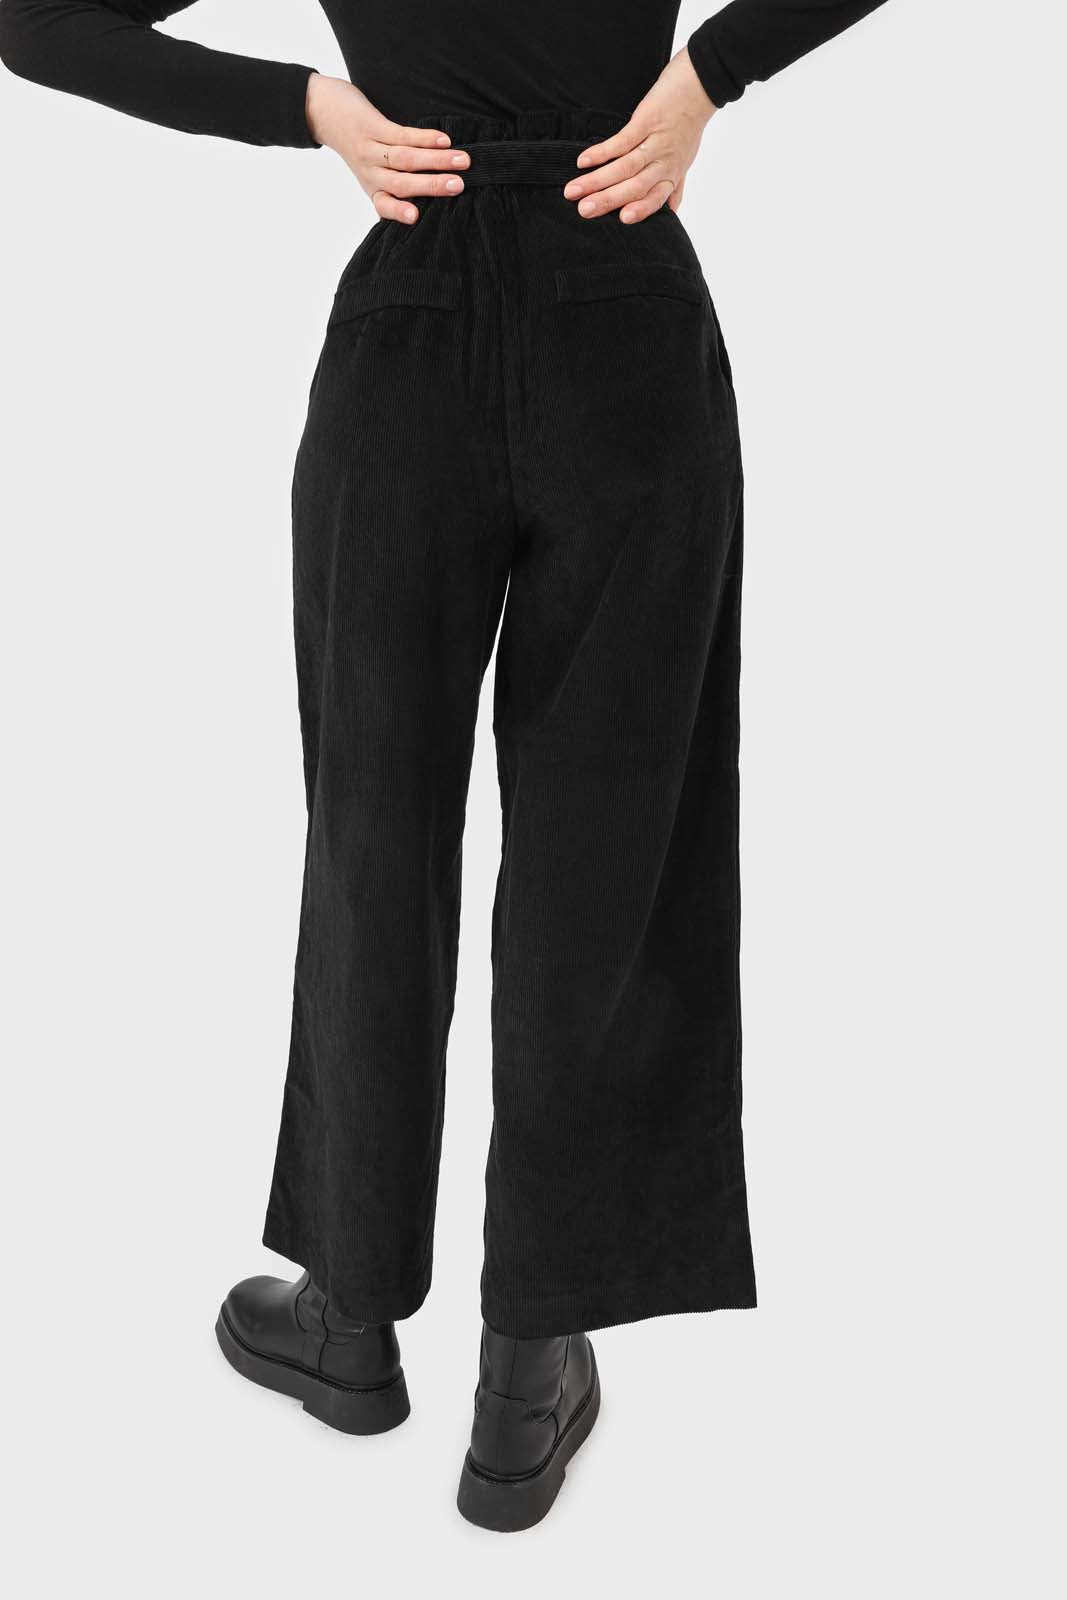 Black micro corduroy belted loose fit trousers4